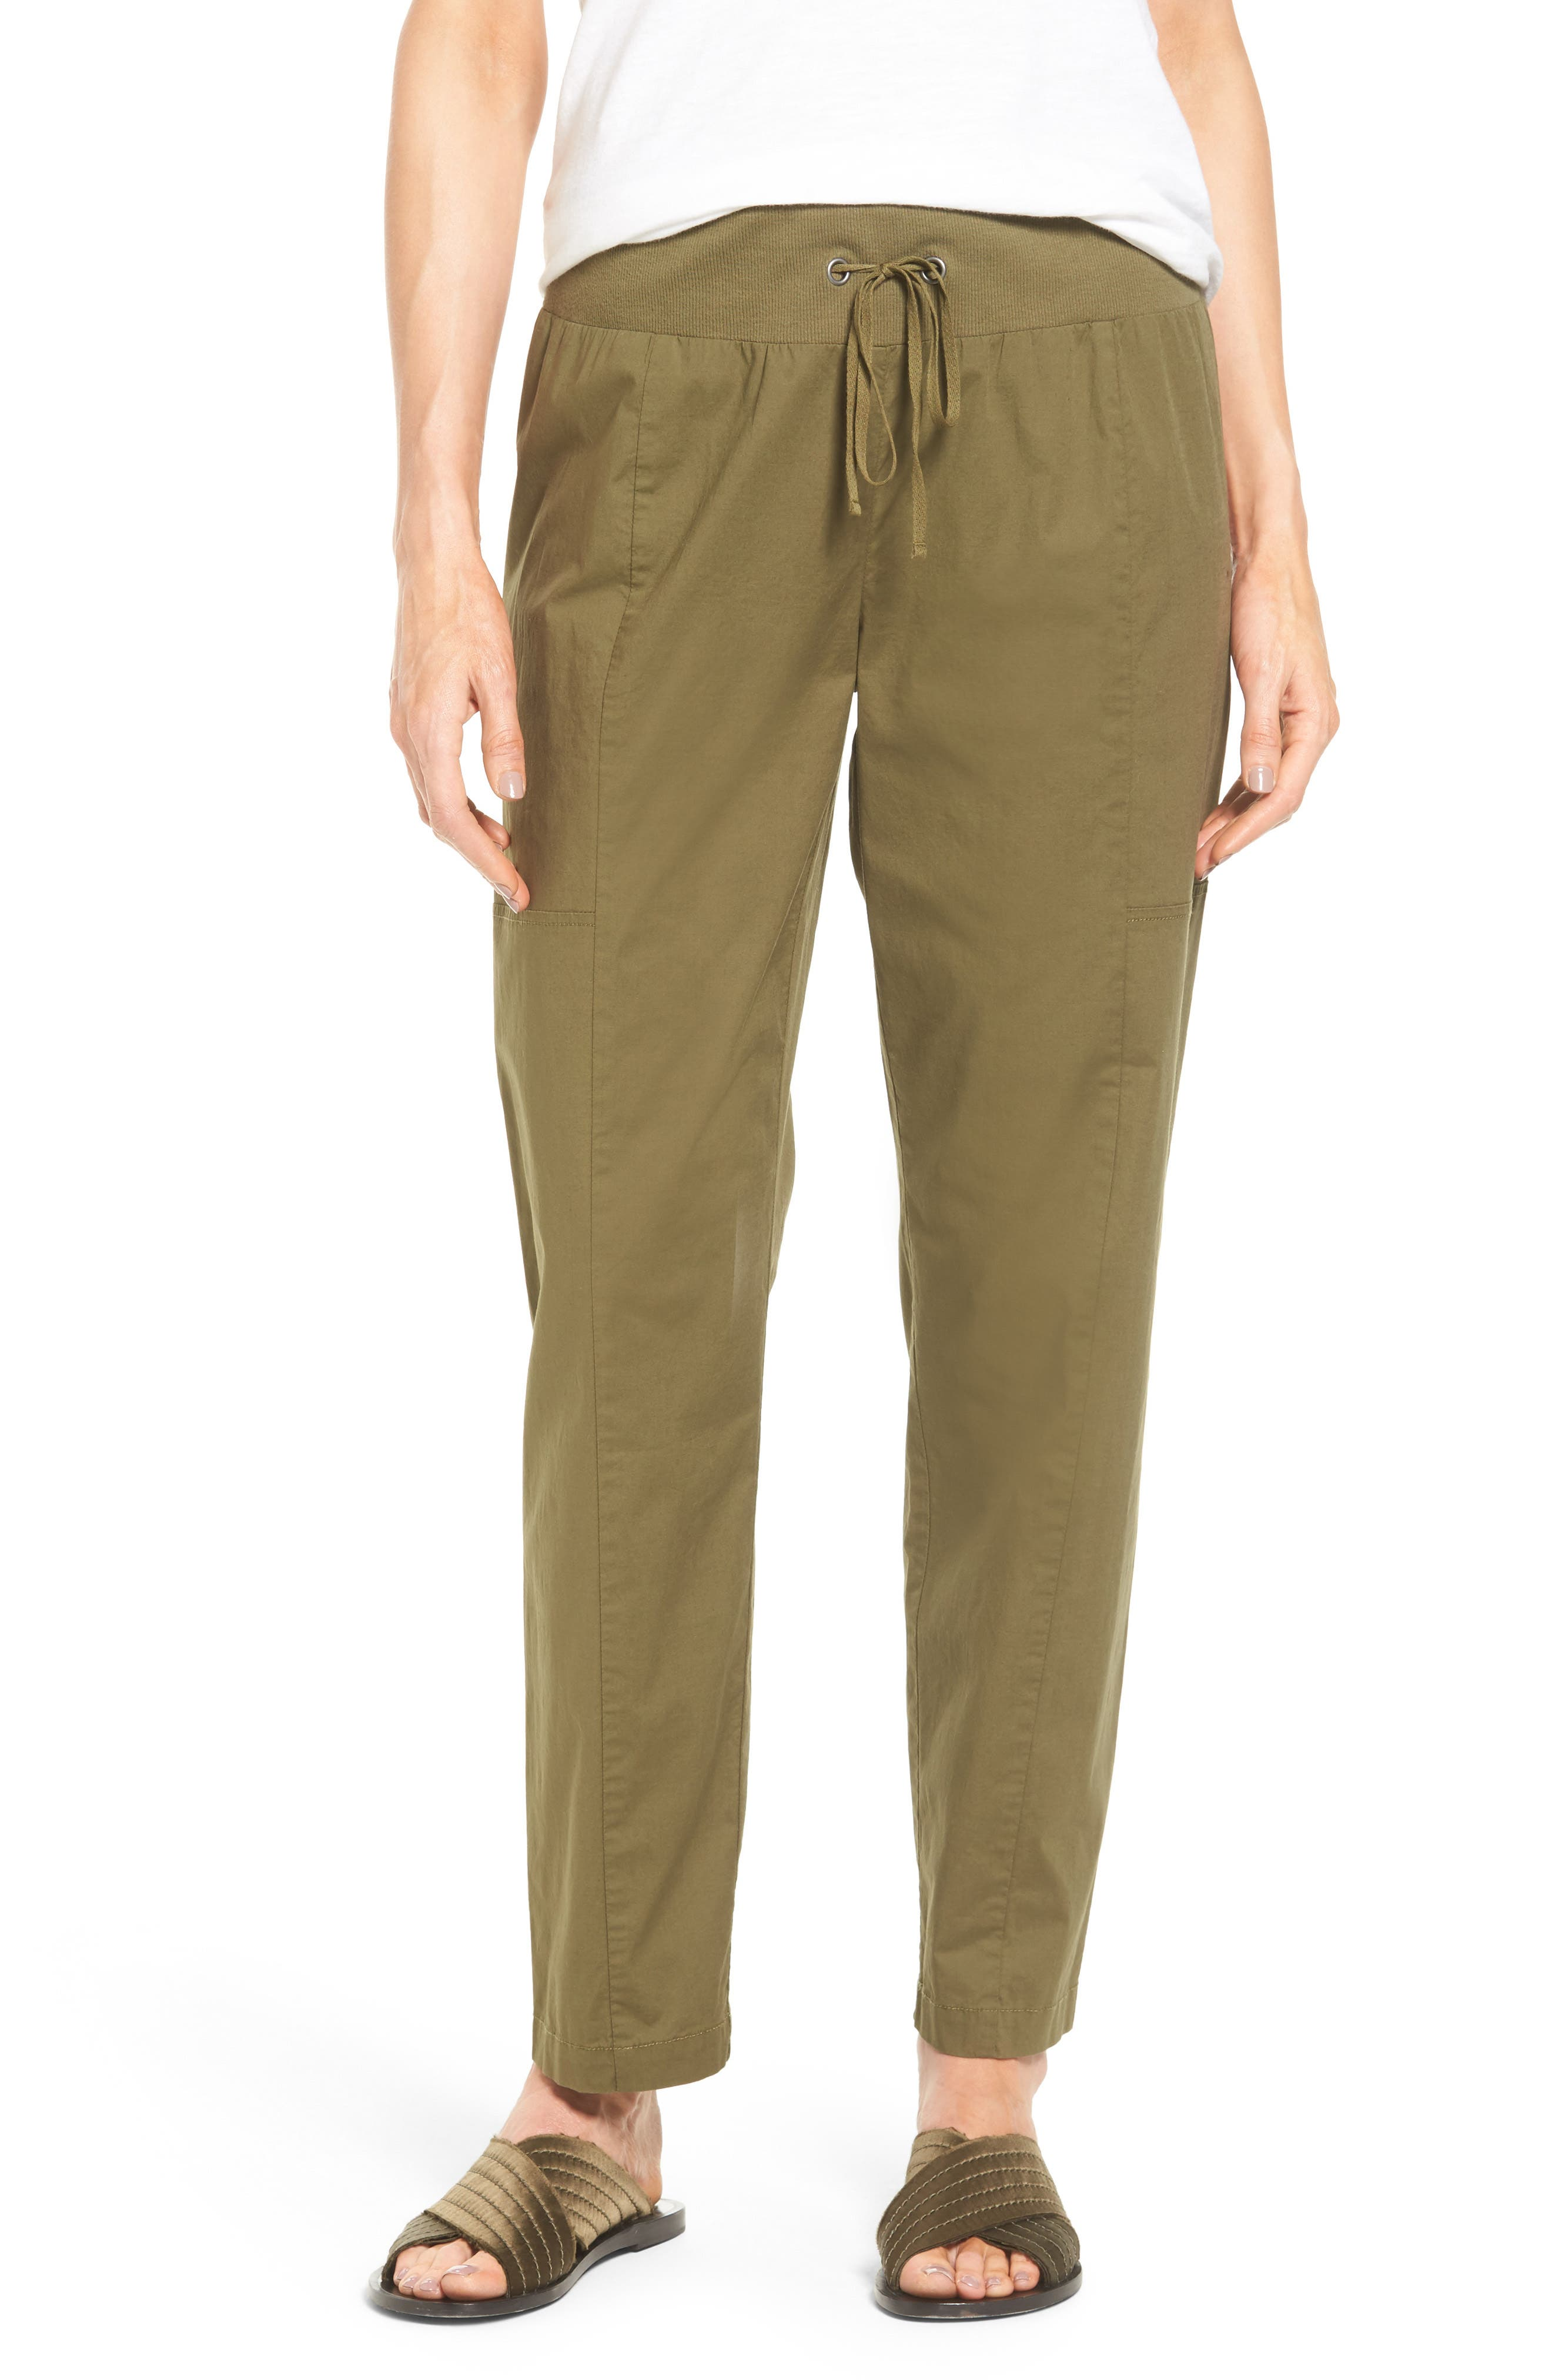 Eileen Fisher Drawstring Ankle Pants (Regular & Petite)